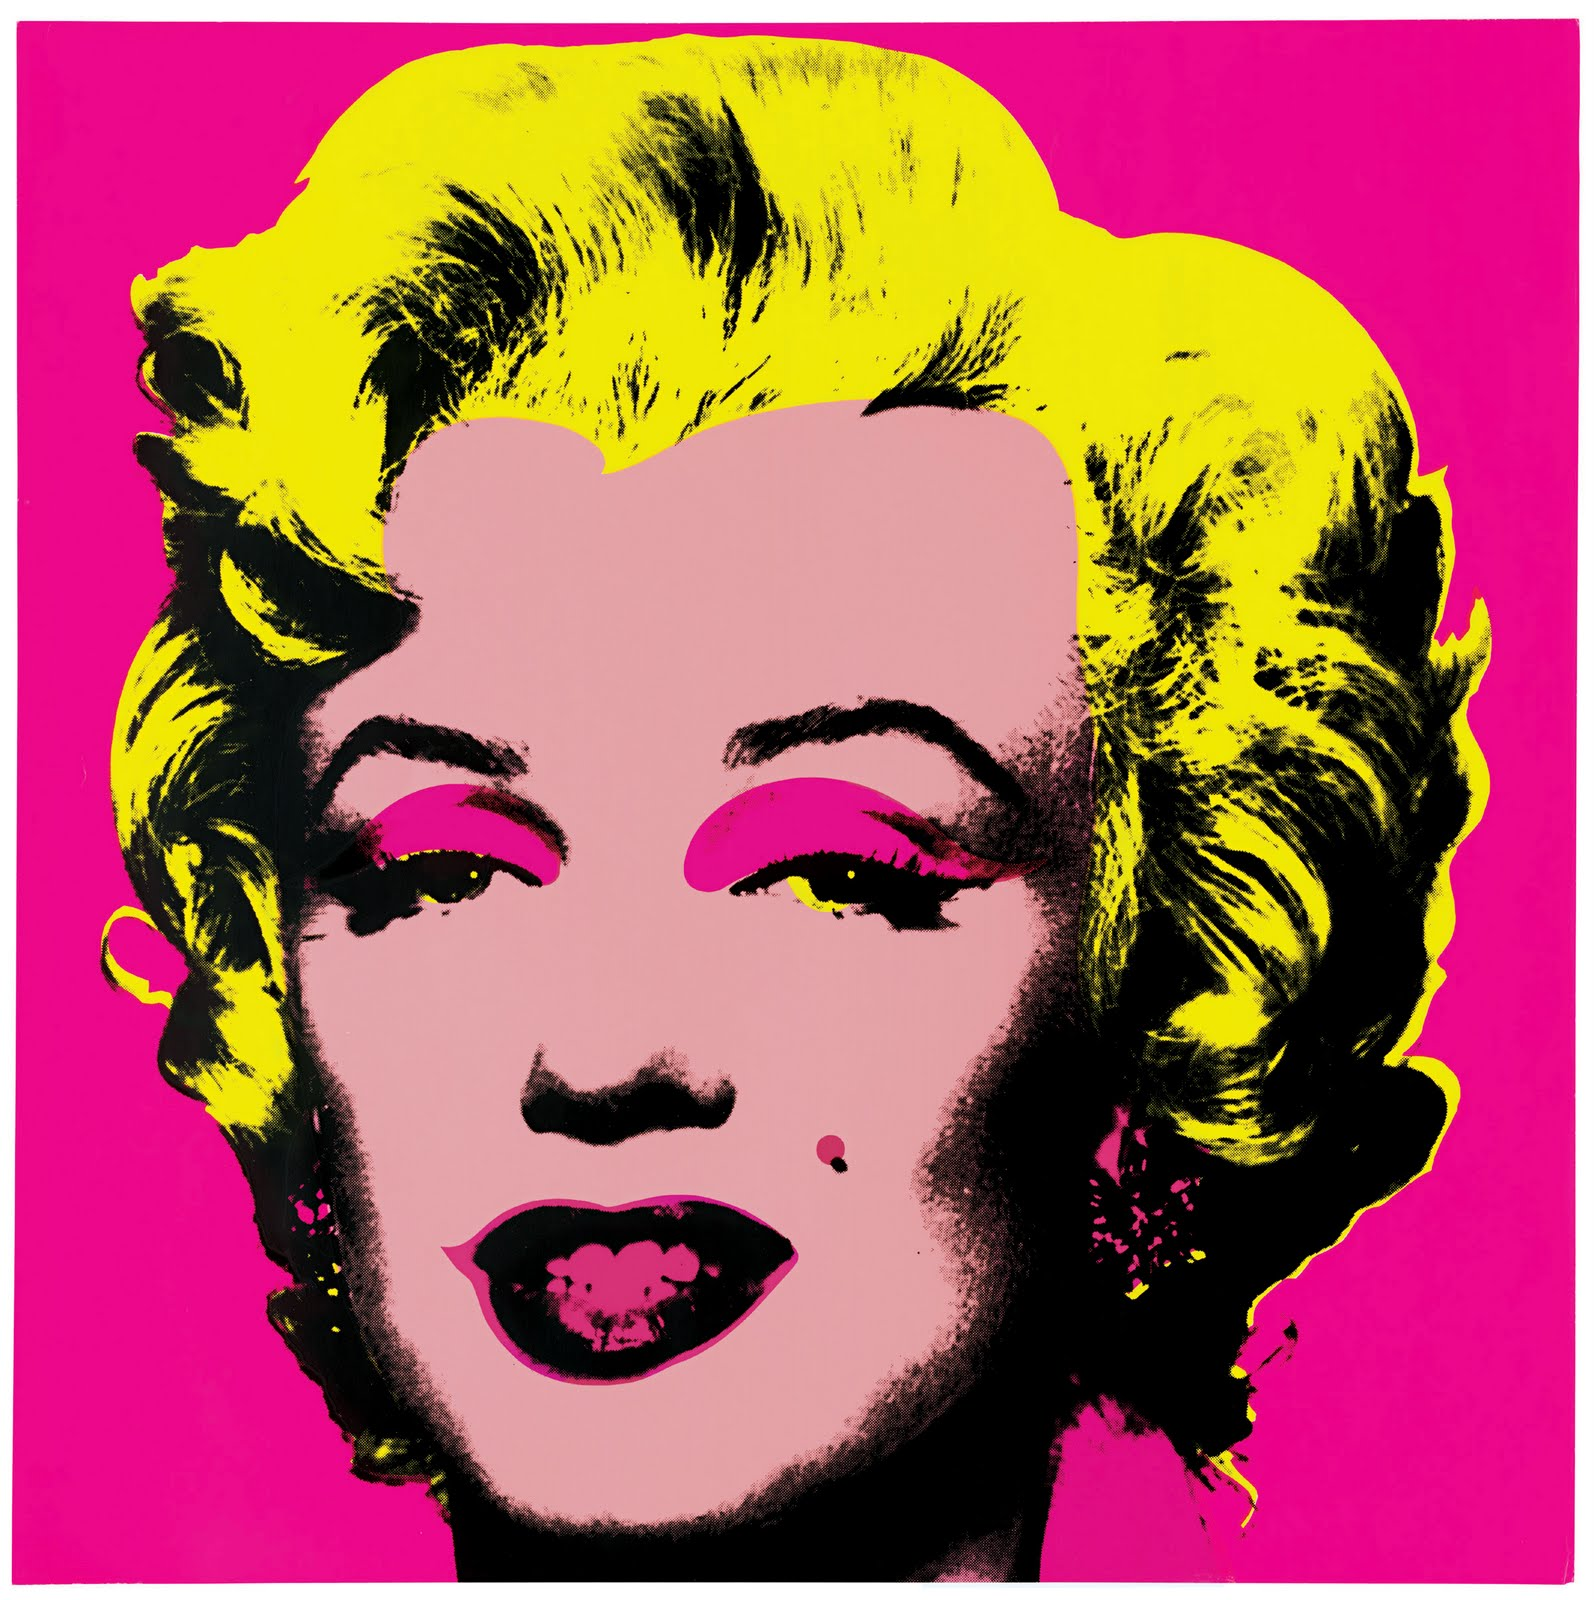 andy warhol the artist View prints by andy warhol on originalprintscom, a worldwide network of dealers specialising in original prints by leading artists.